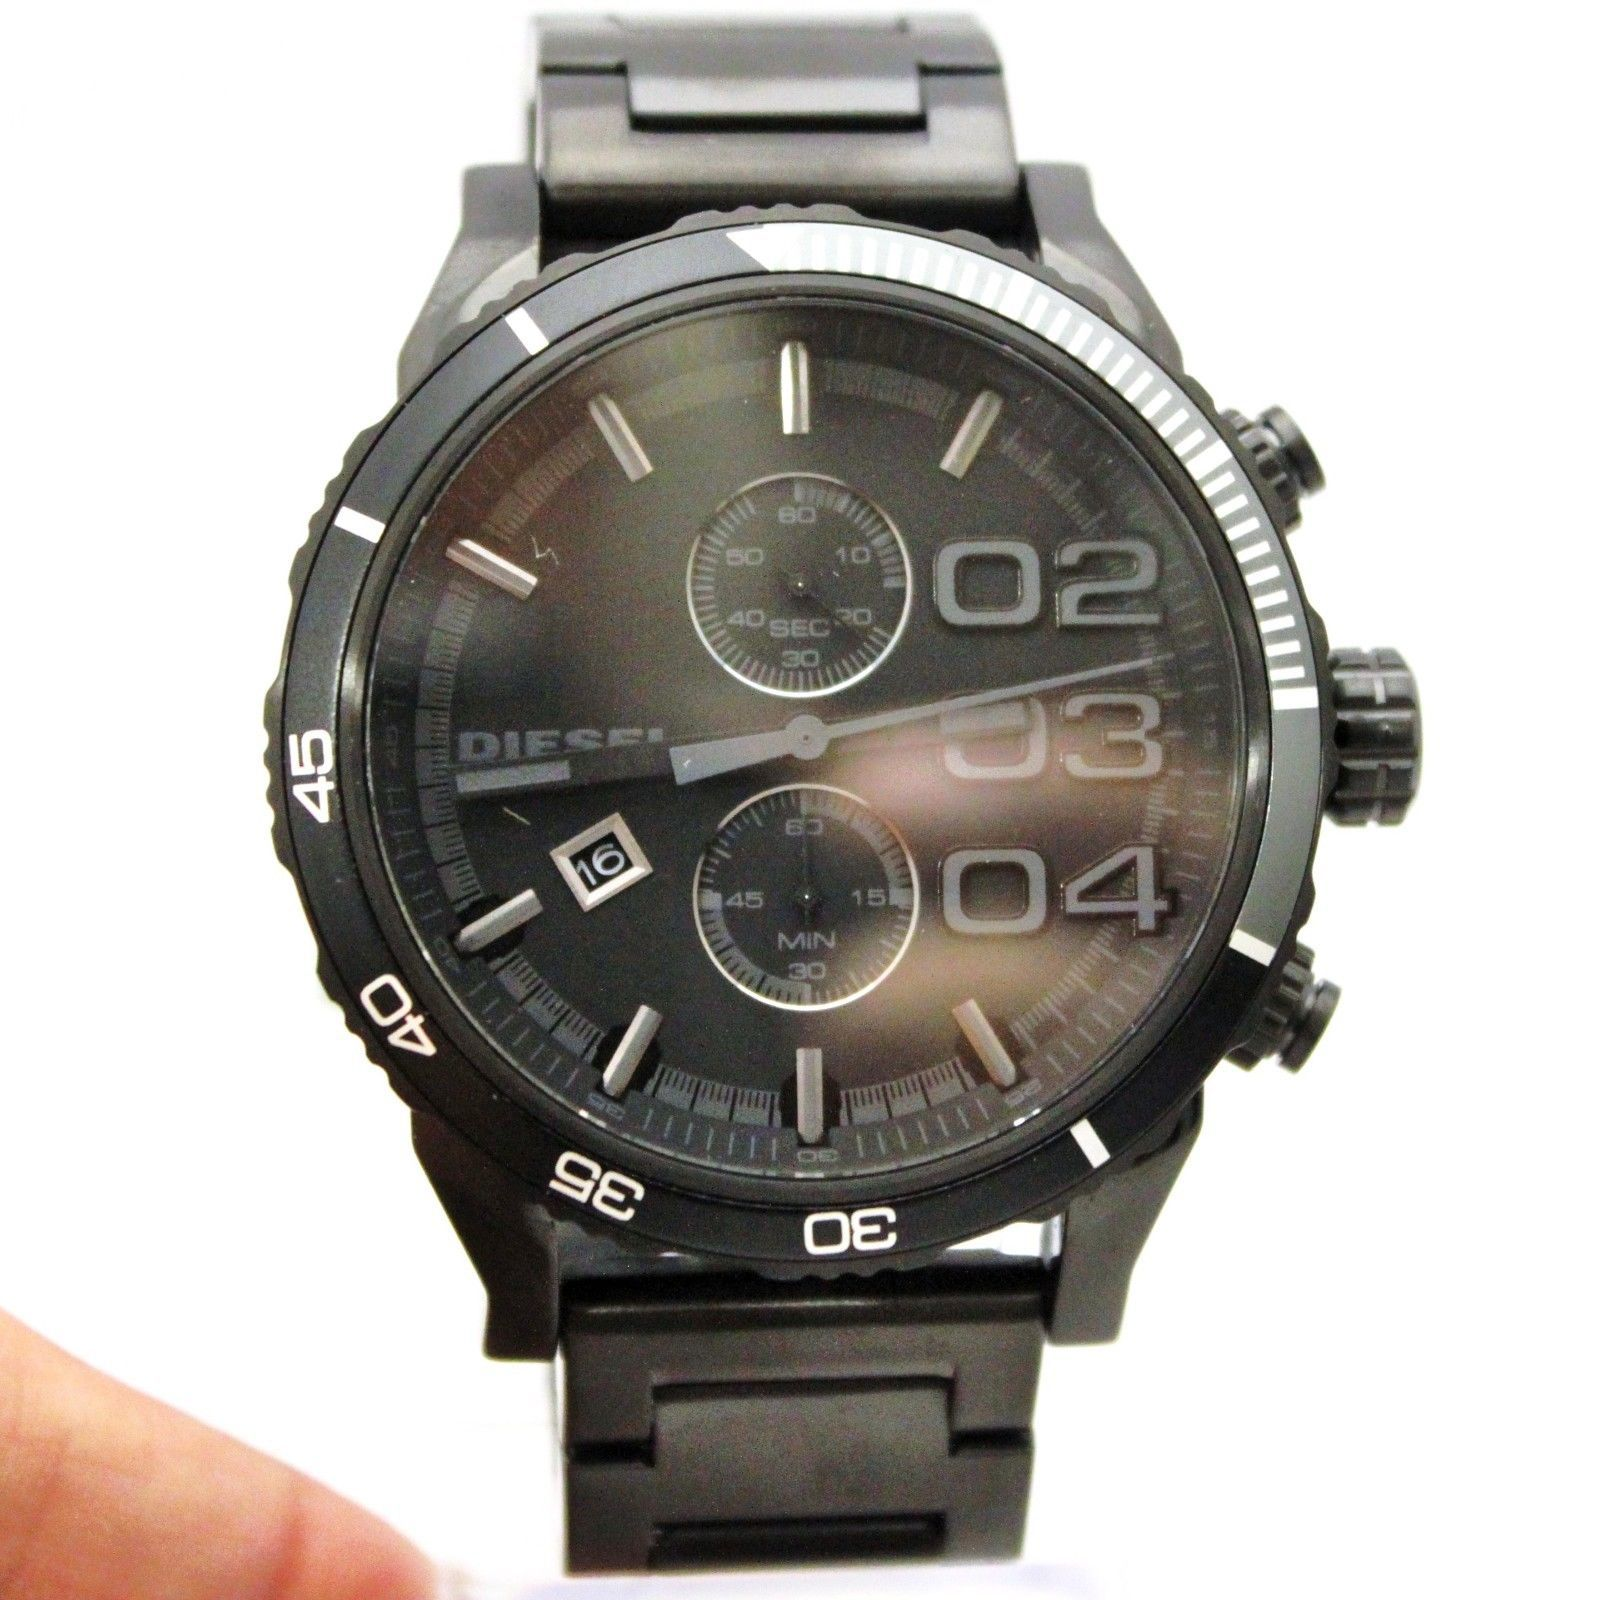 New Diesel DZ4326 Chronograph Double Dawn Black Stainless Steel Watch for Men